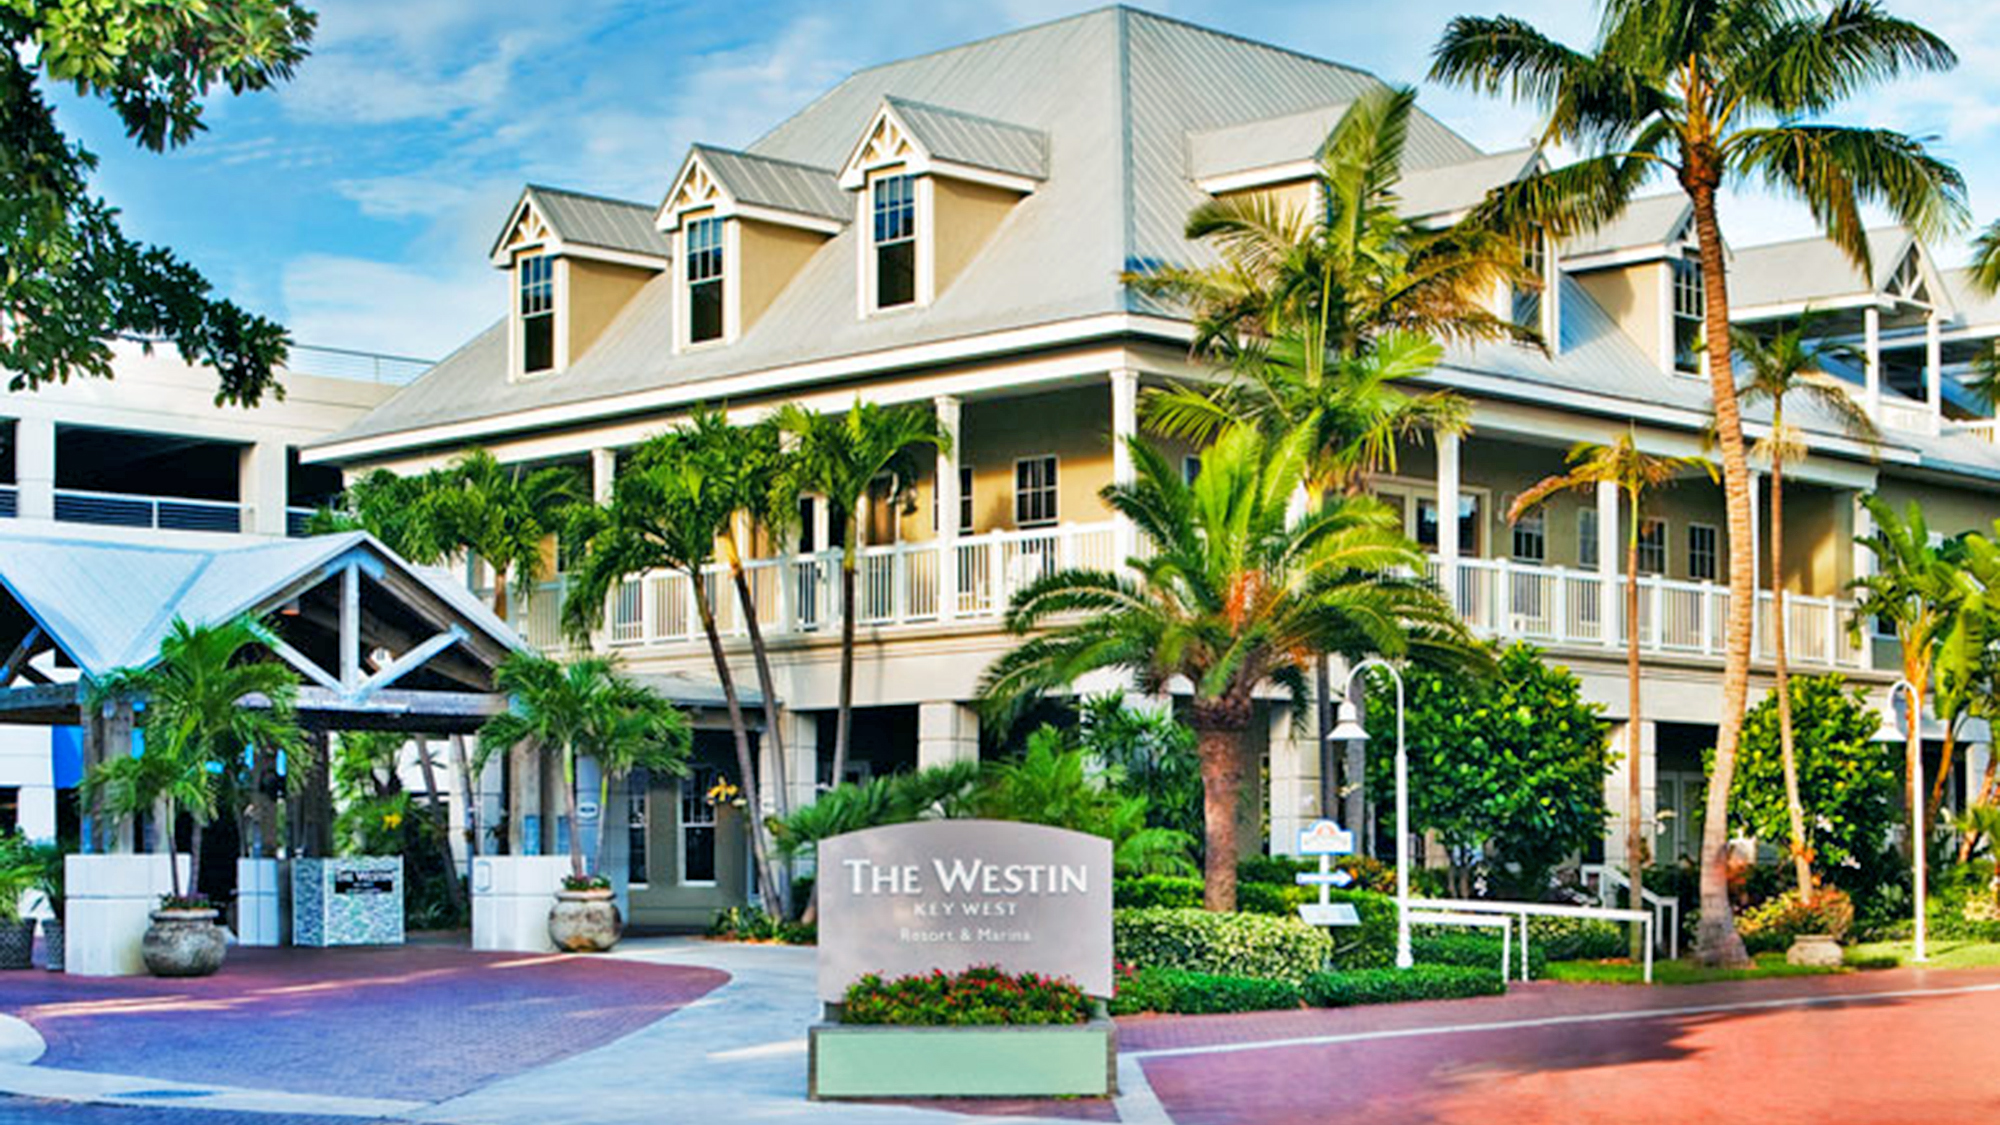 margaritaville to rebrand westin resort in key west: travel weekly